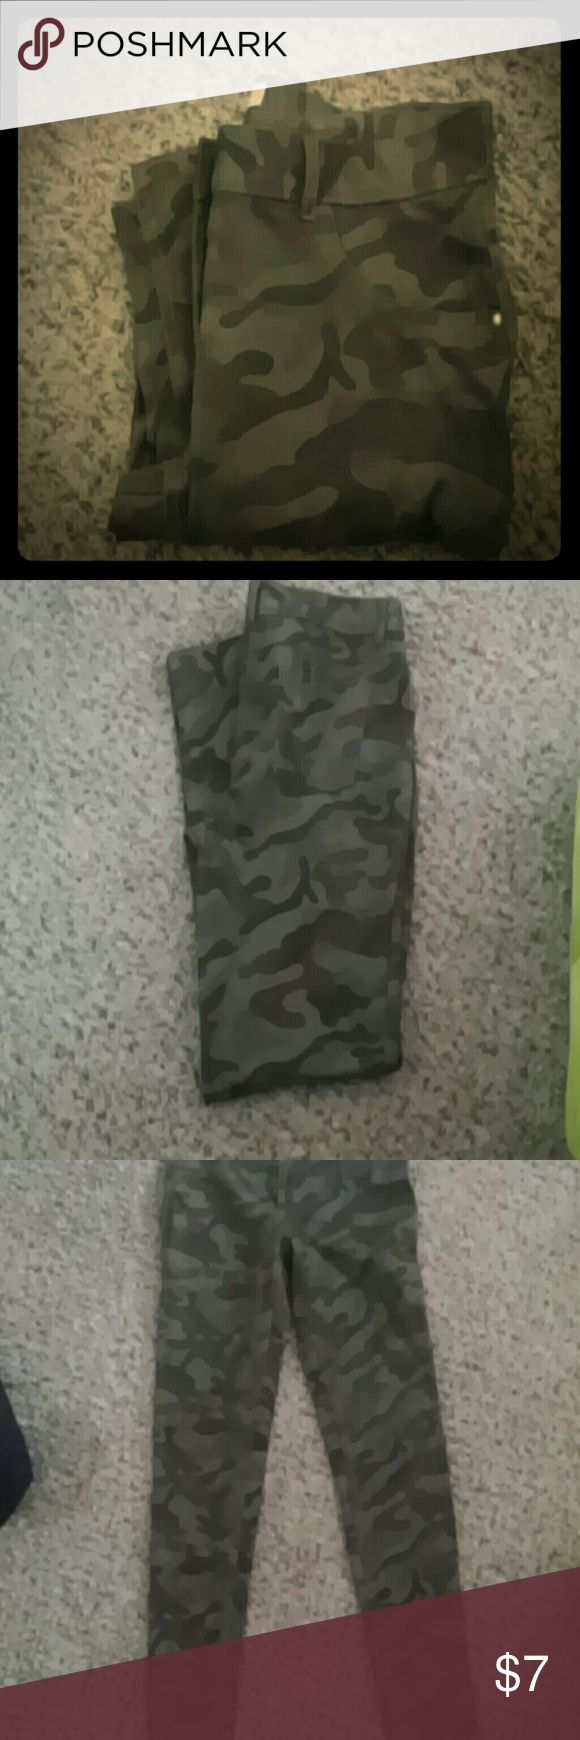 Camo skinny pants Green camo skinny pants,kinda like jeggings. Very comfy with a lot of stretch to them. Gently used, just don't fit anymore. No Boundaries Pants Skinny